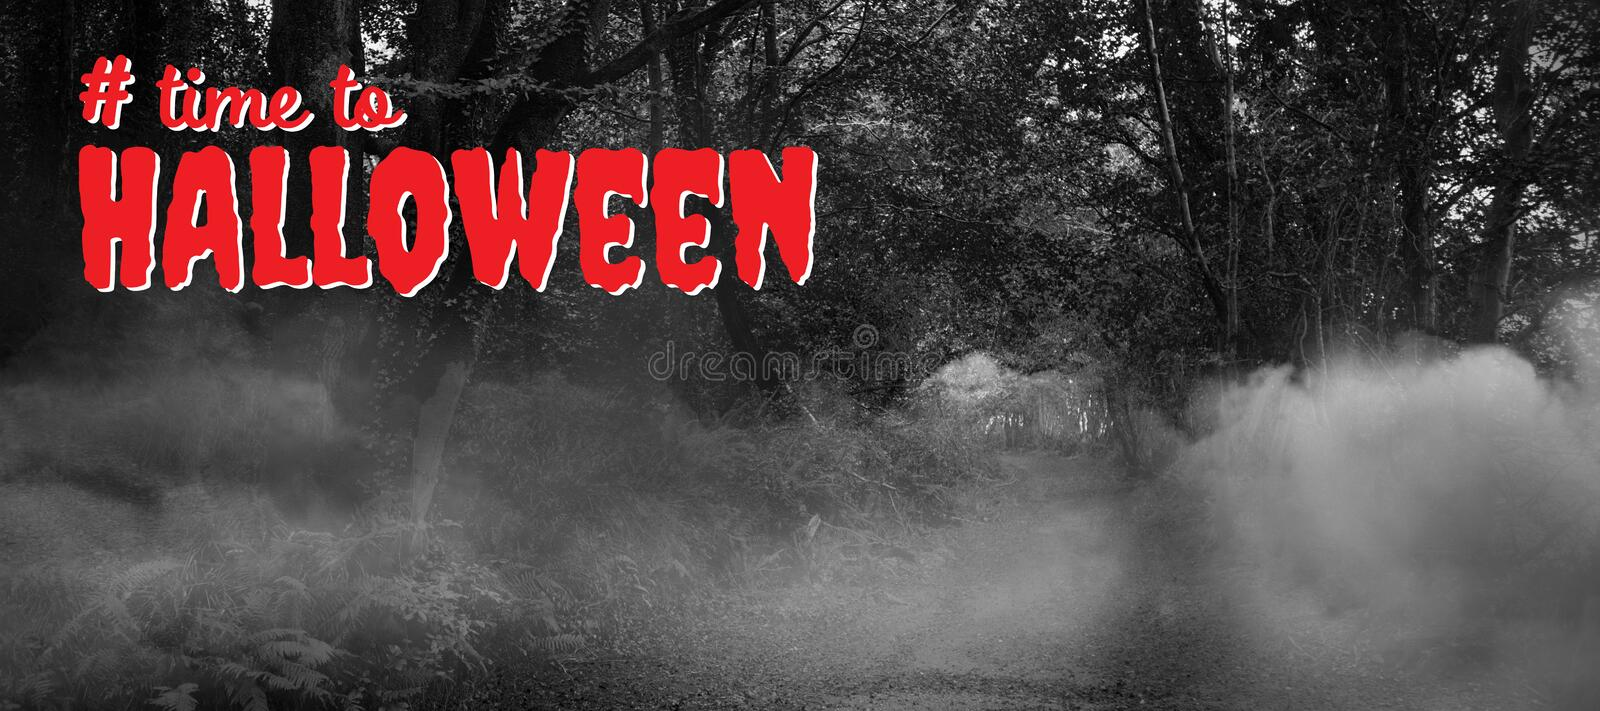 Composite image of digital composite image of time to halloween text. Digital composite image of time to Halloween text against way between trees stock photos